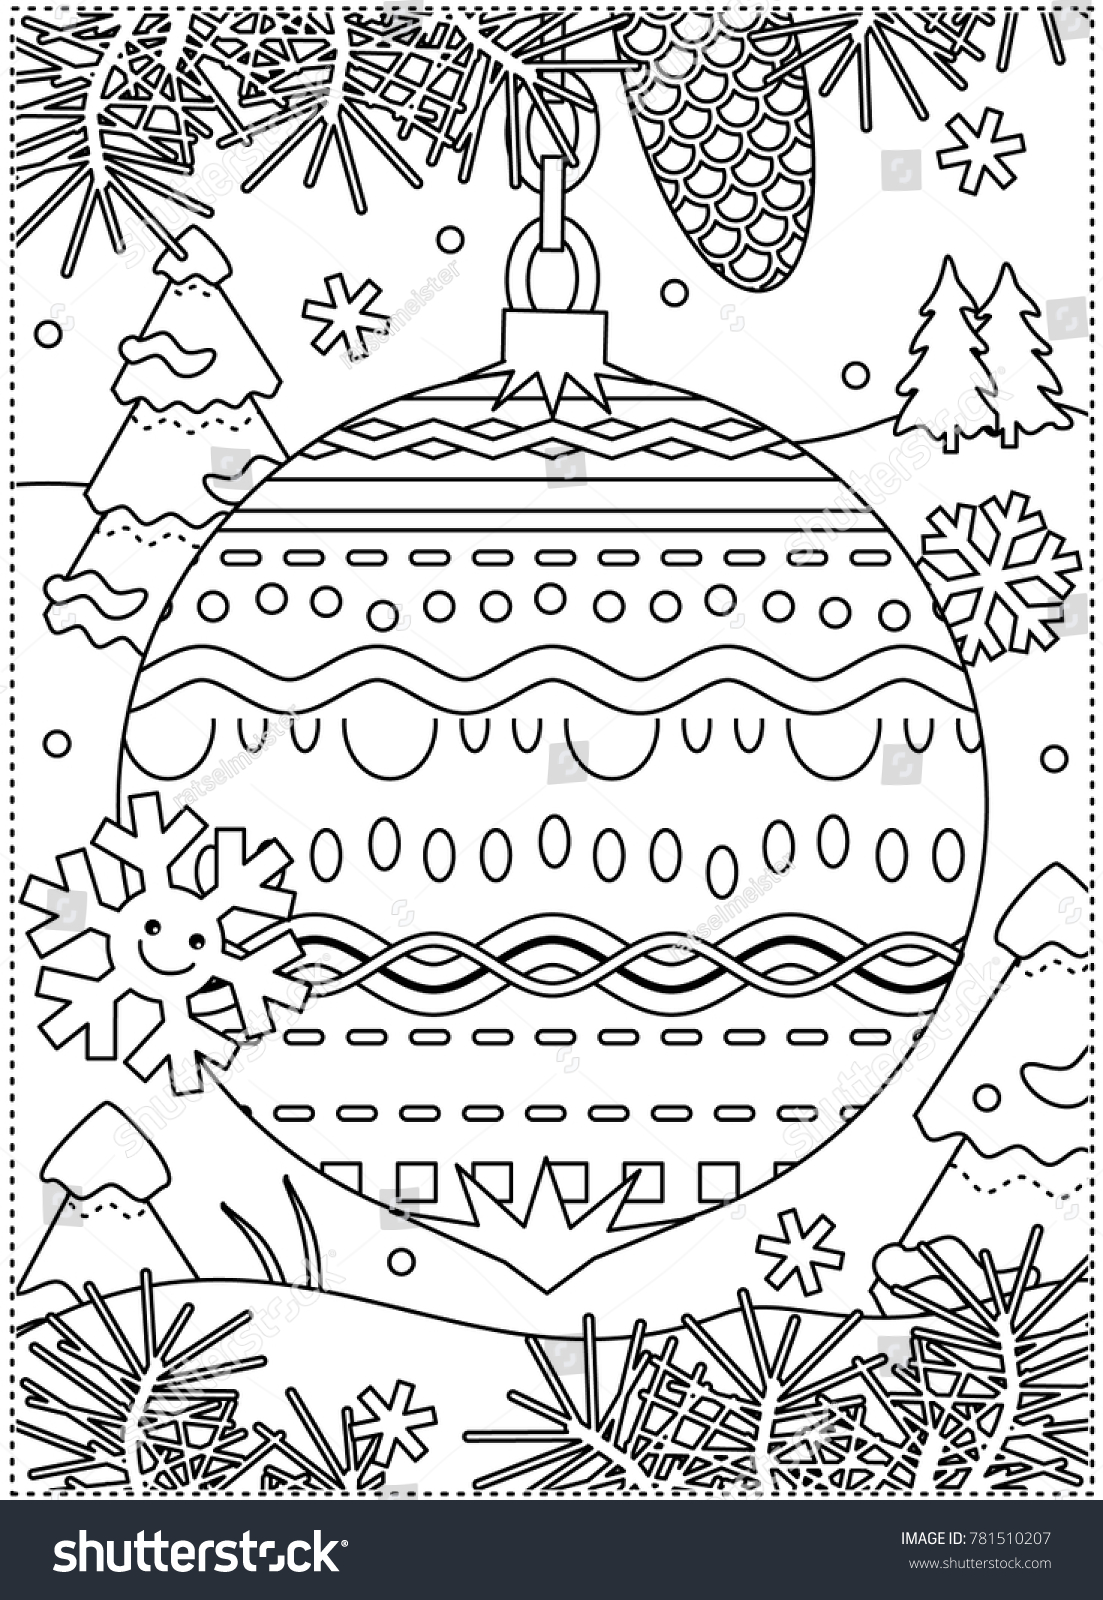 Winter Holidays Coloring Page Kids Grownups Stock Vector Royalty